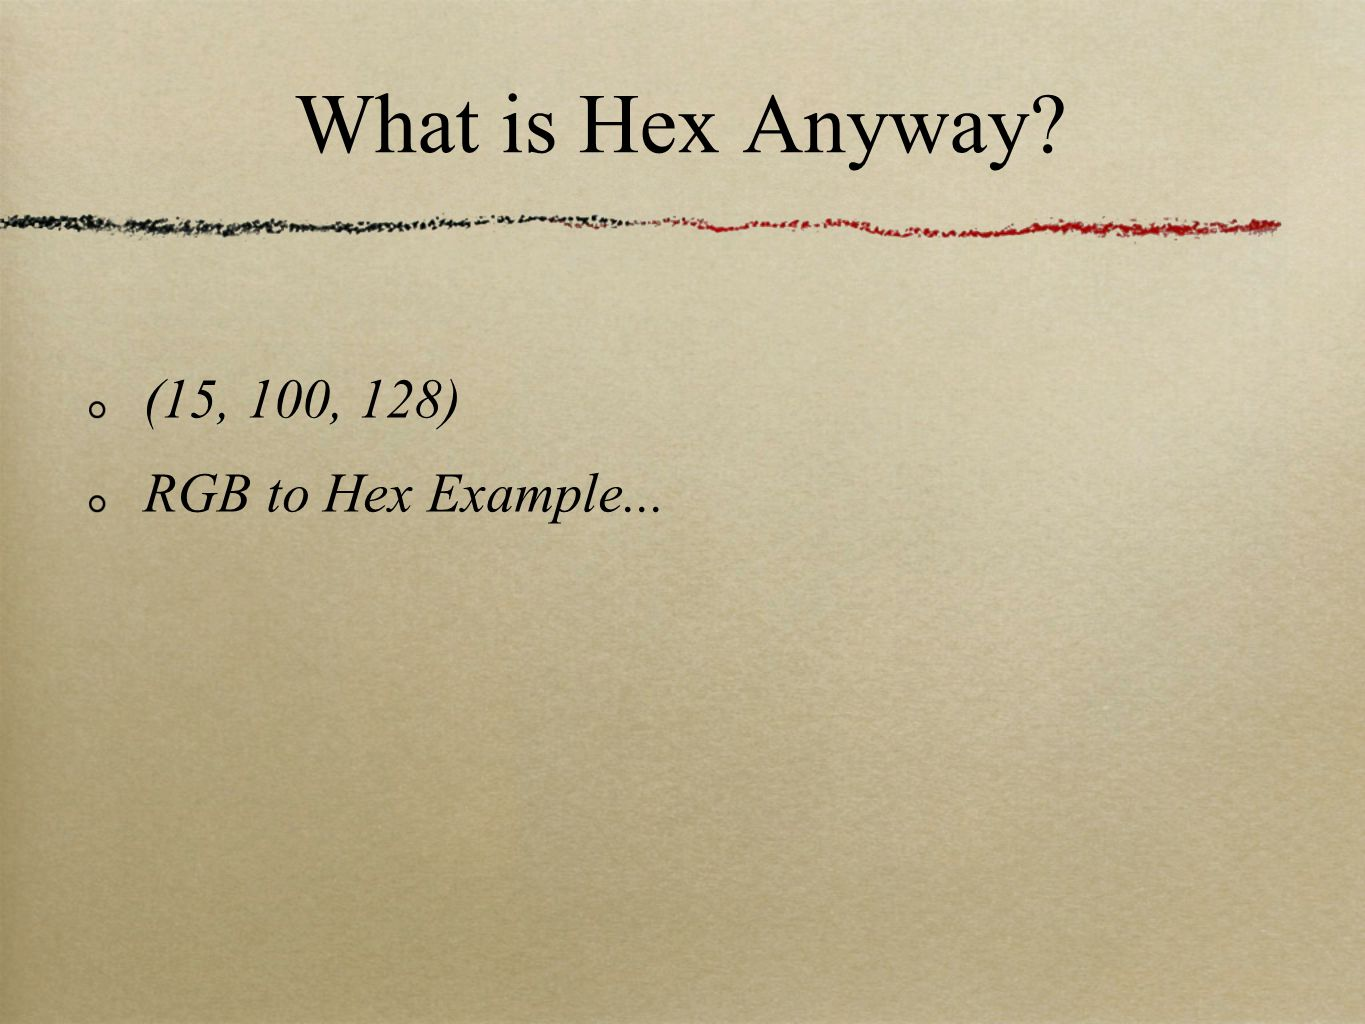 What is Hex Anyway (15, 100, 128) RGB to Hex Example...